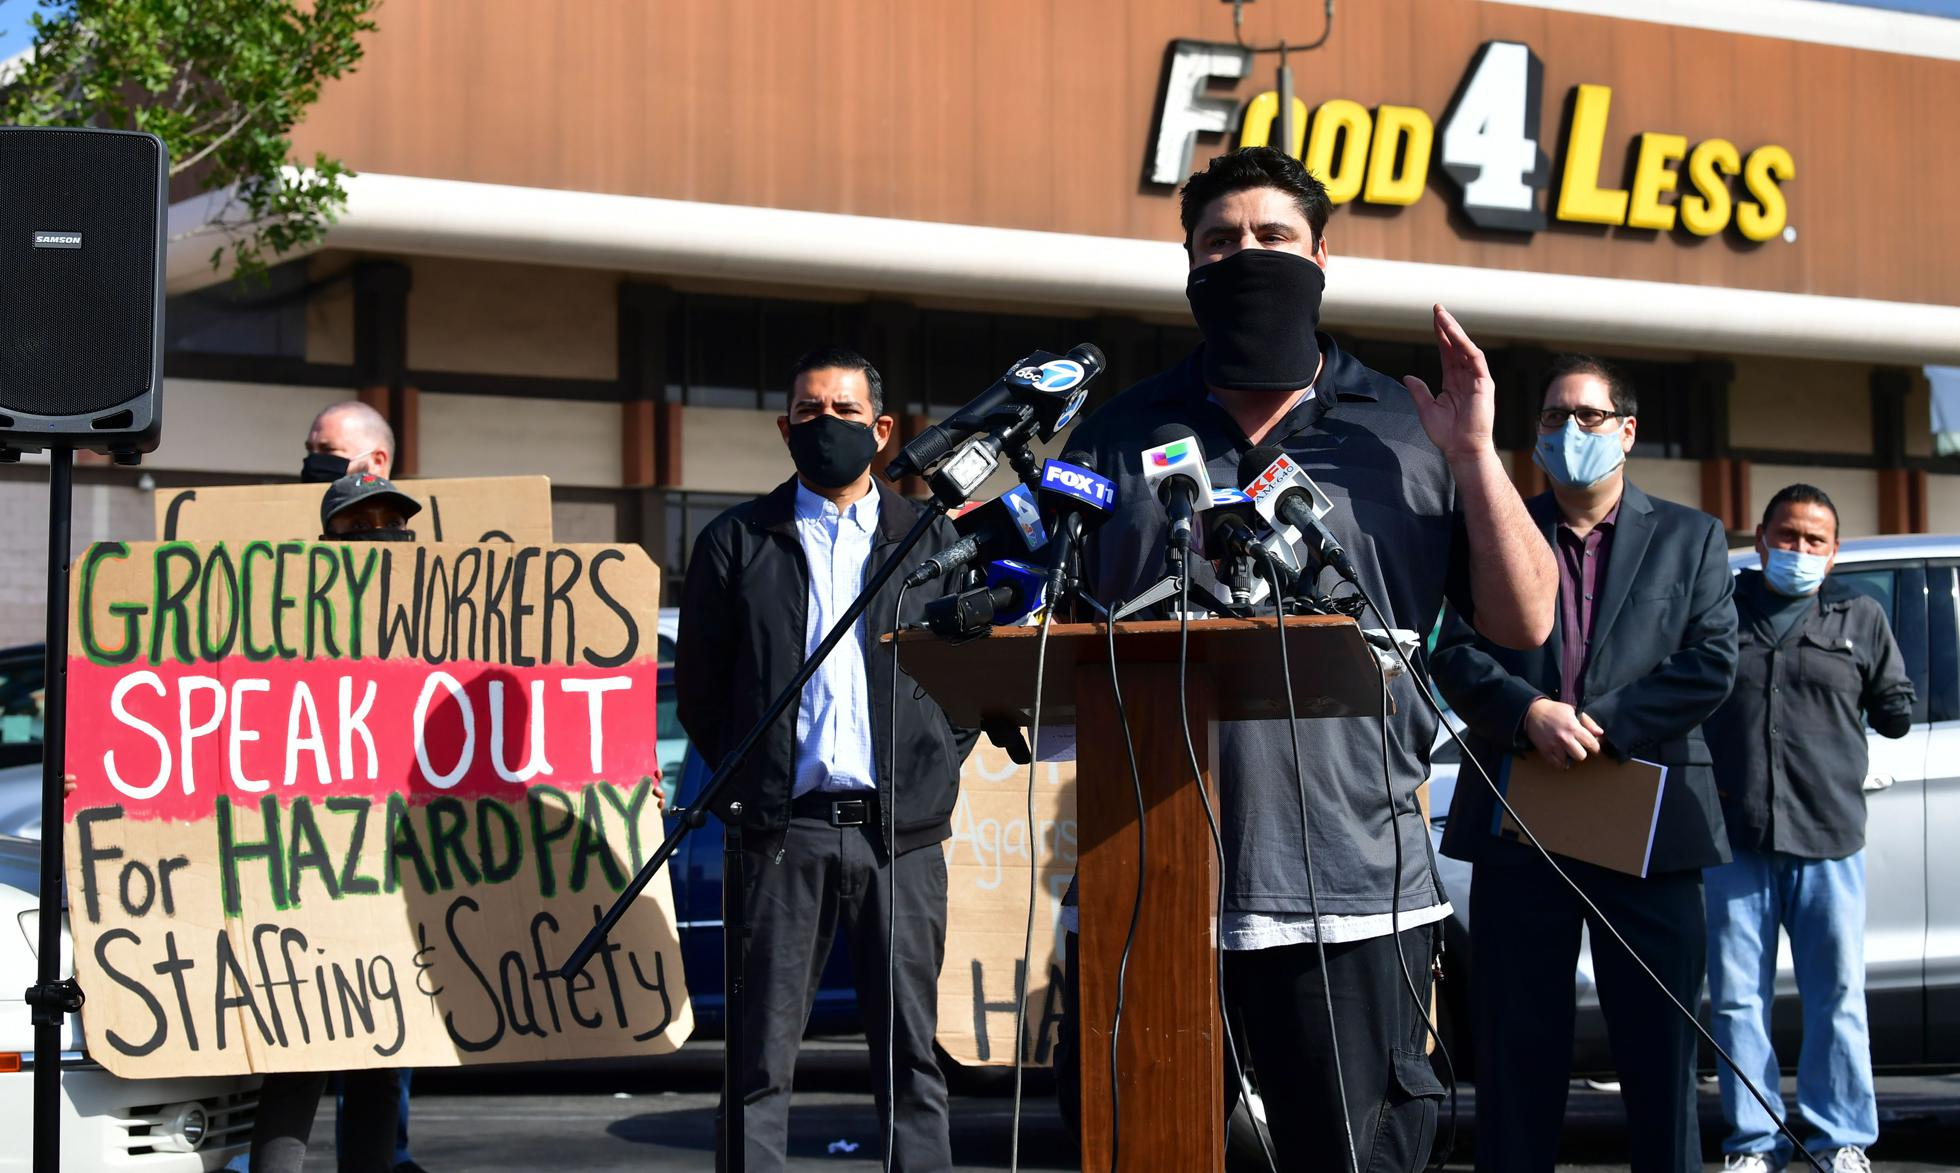 In February, Robert Gonzales, a Kroger employee of 26 years, addressed a crowd of supermarket workers gathered to protest in front of a Food 4 Less supermarket in Long Beach, California. The store's owner, Kroger, decided to close two supermarkets after Long Beach City Council passed a $4 per hour hazard pay mandate.